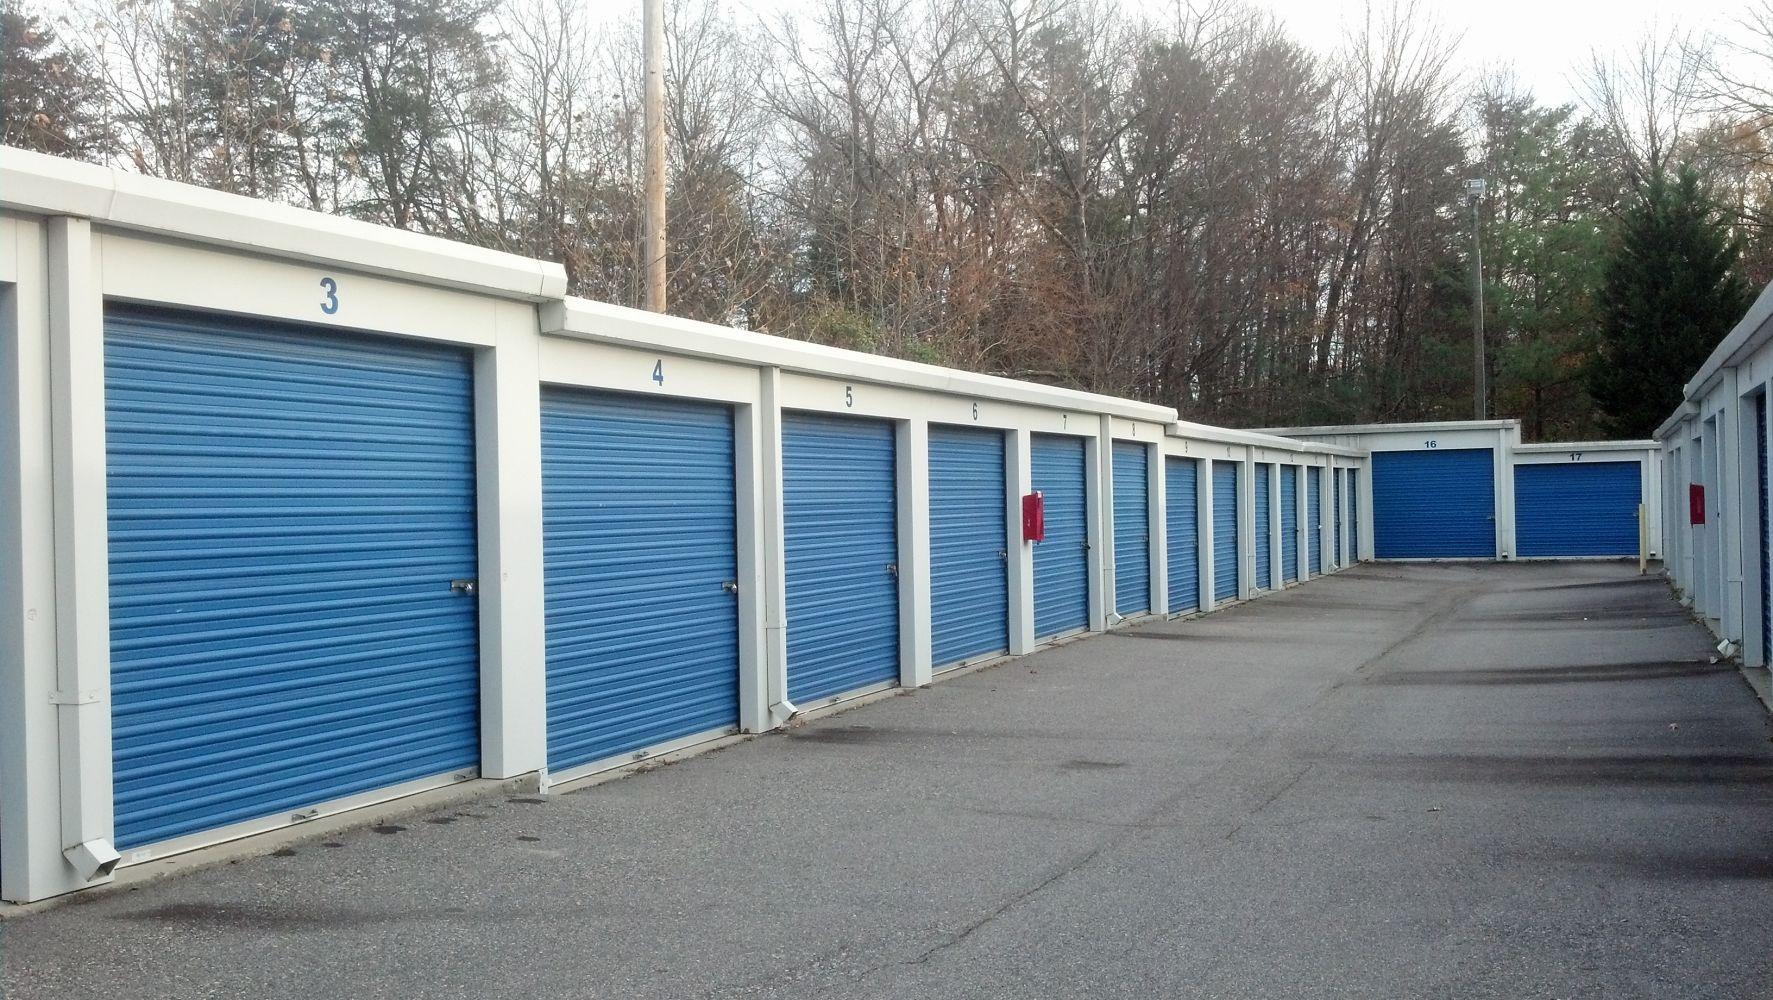 For a convenient storage unit in High Point, NC, look no further